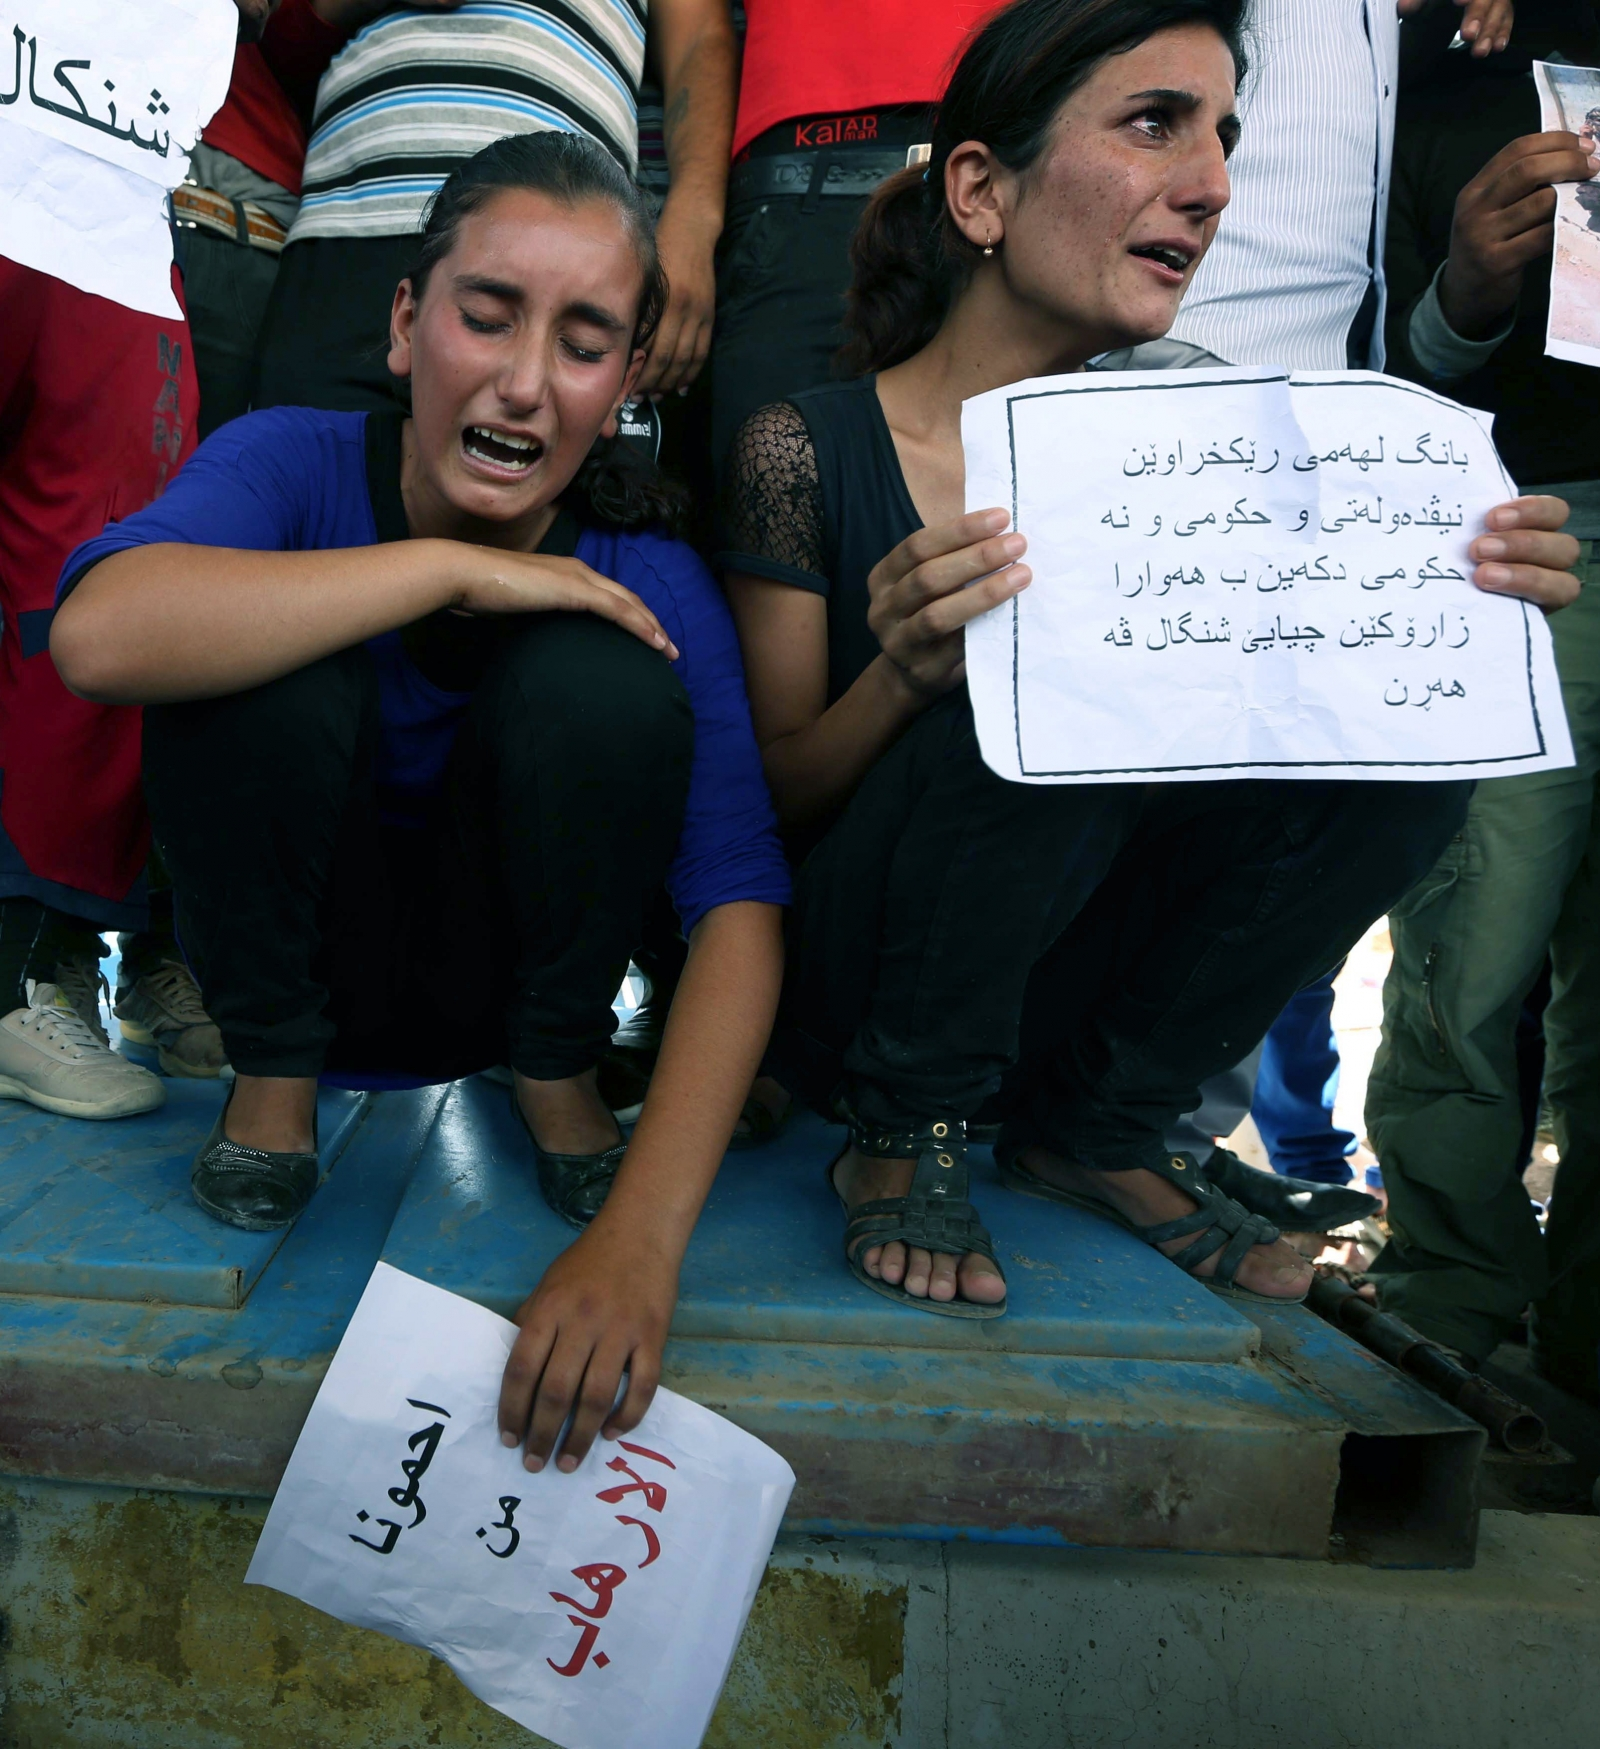 Members of the minority Yazidi religion were threatened after Islamic State (or Isis) threatened to slaughter them unless they convert to Islam.